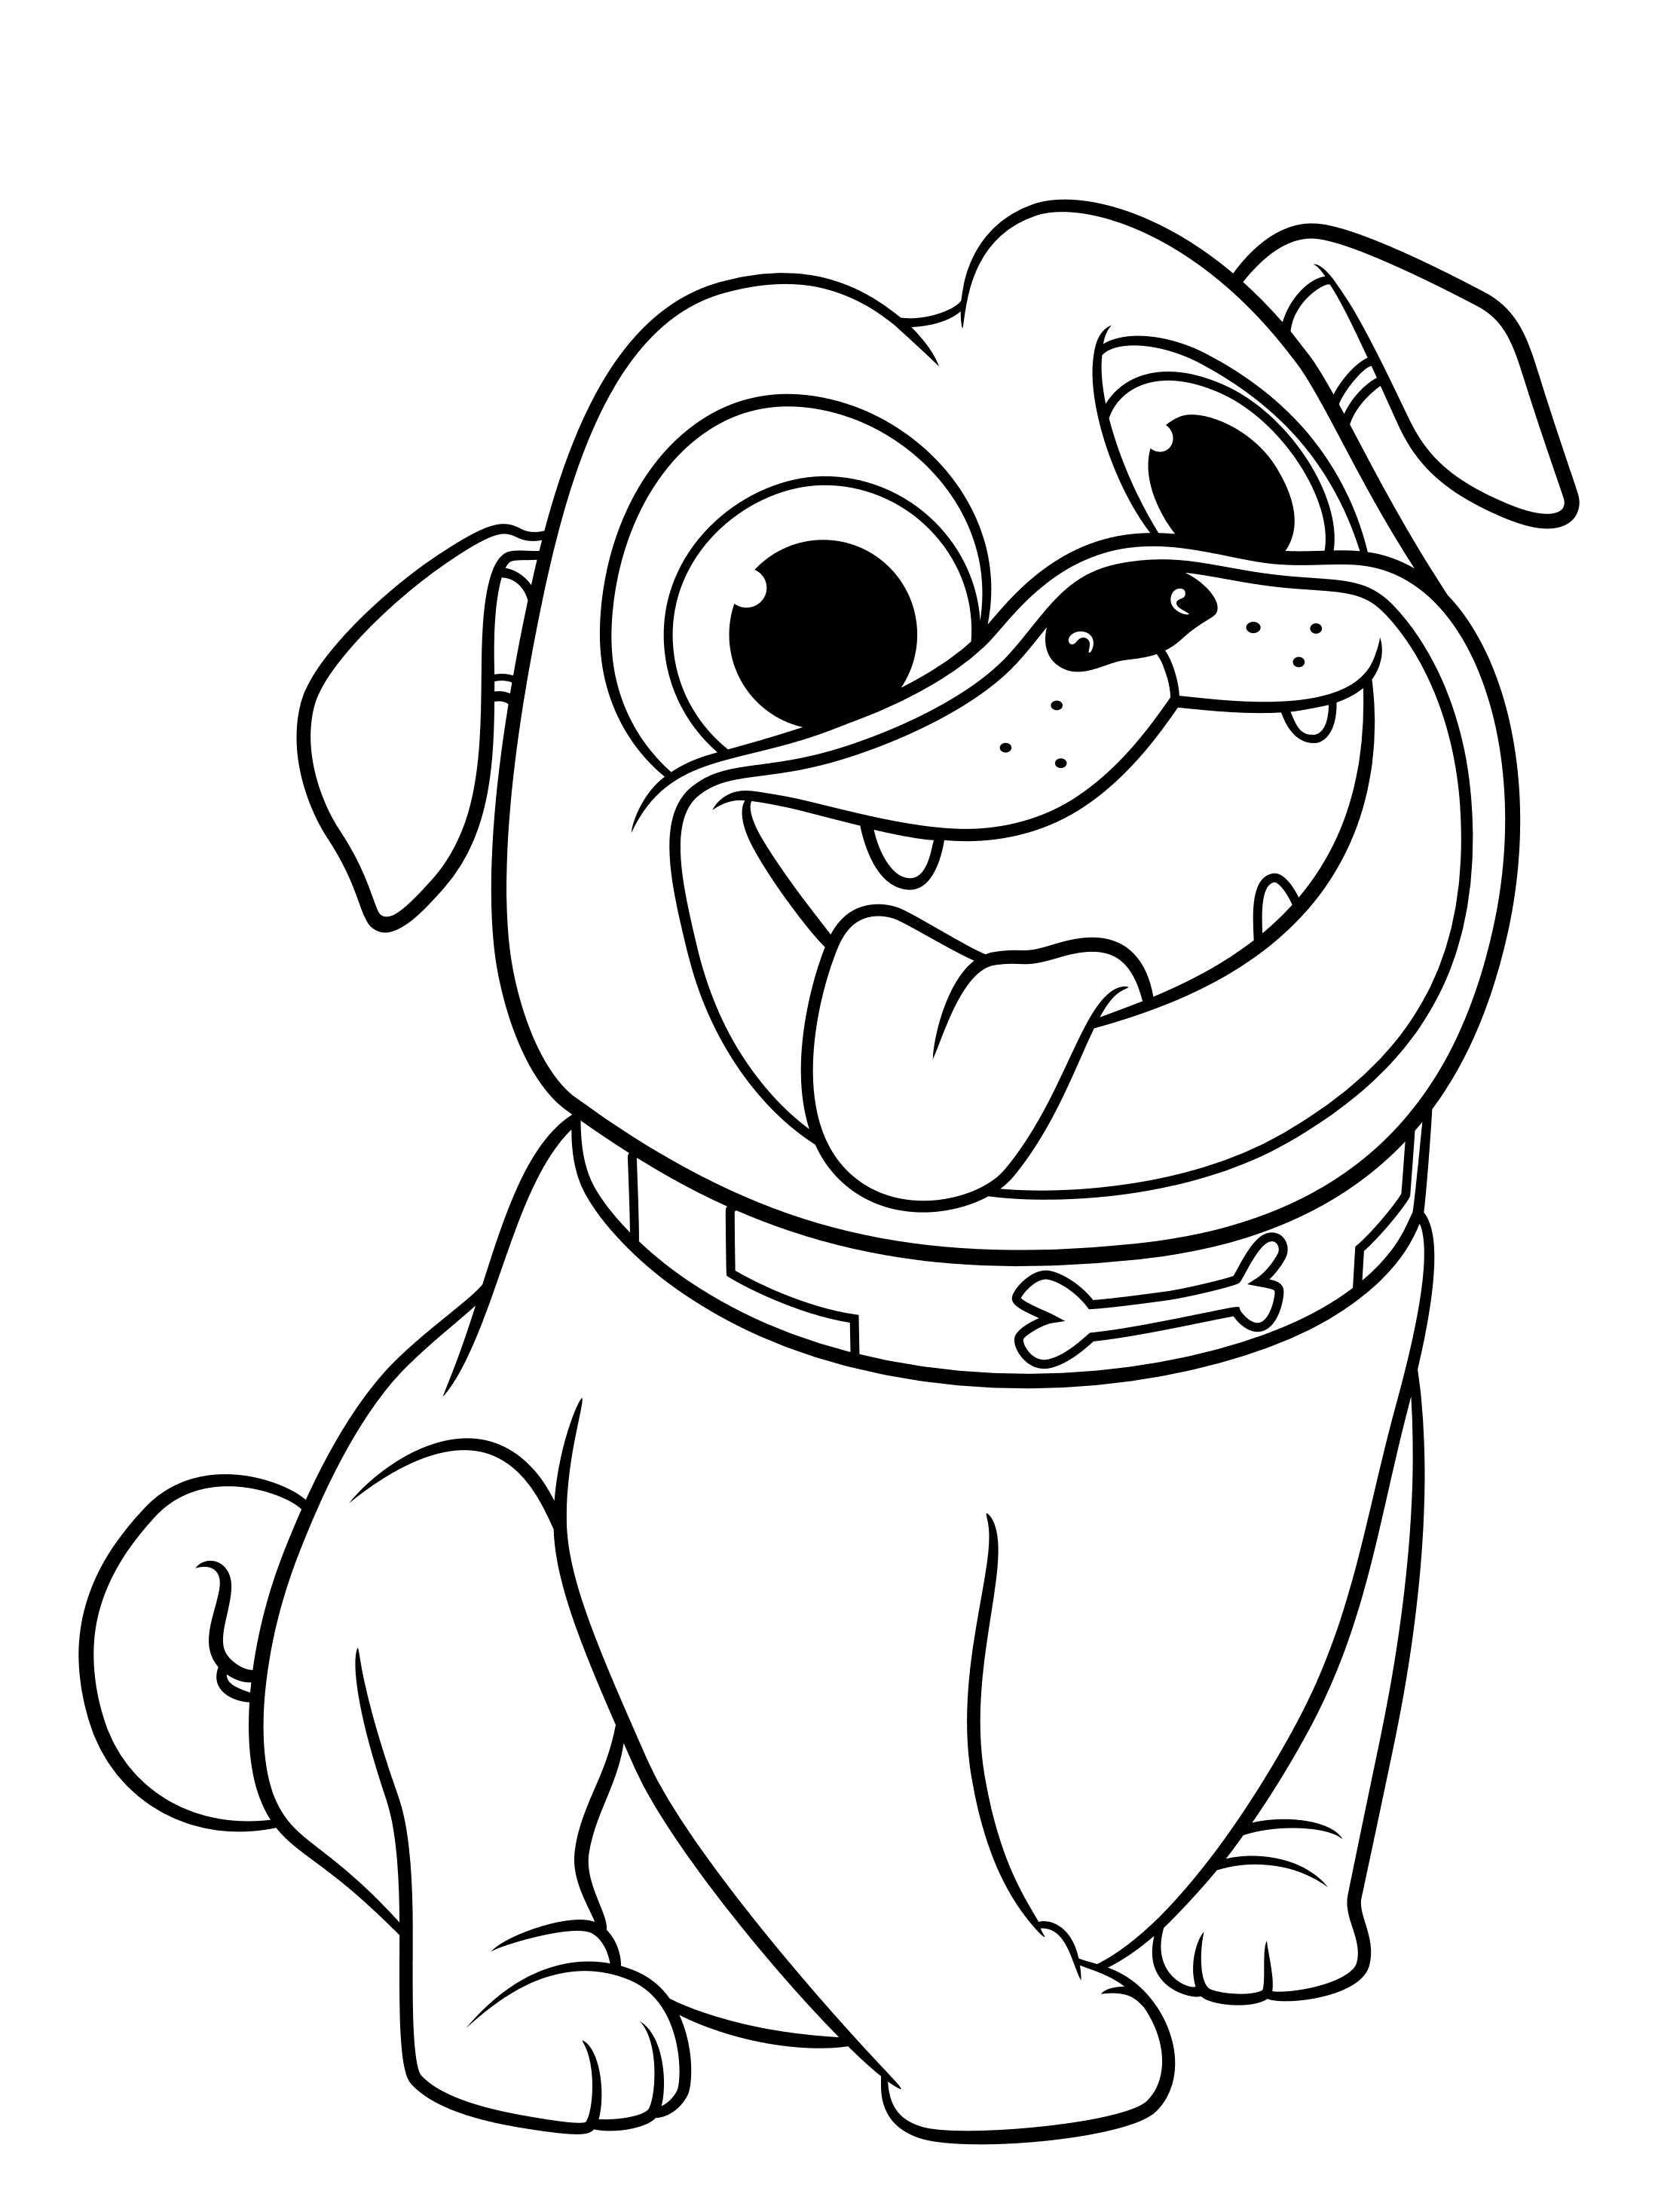 dog colouring in puppy dog pals and arf colouring image in dog colouring